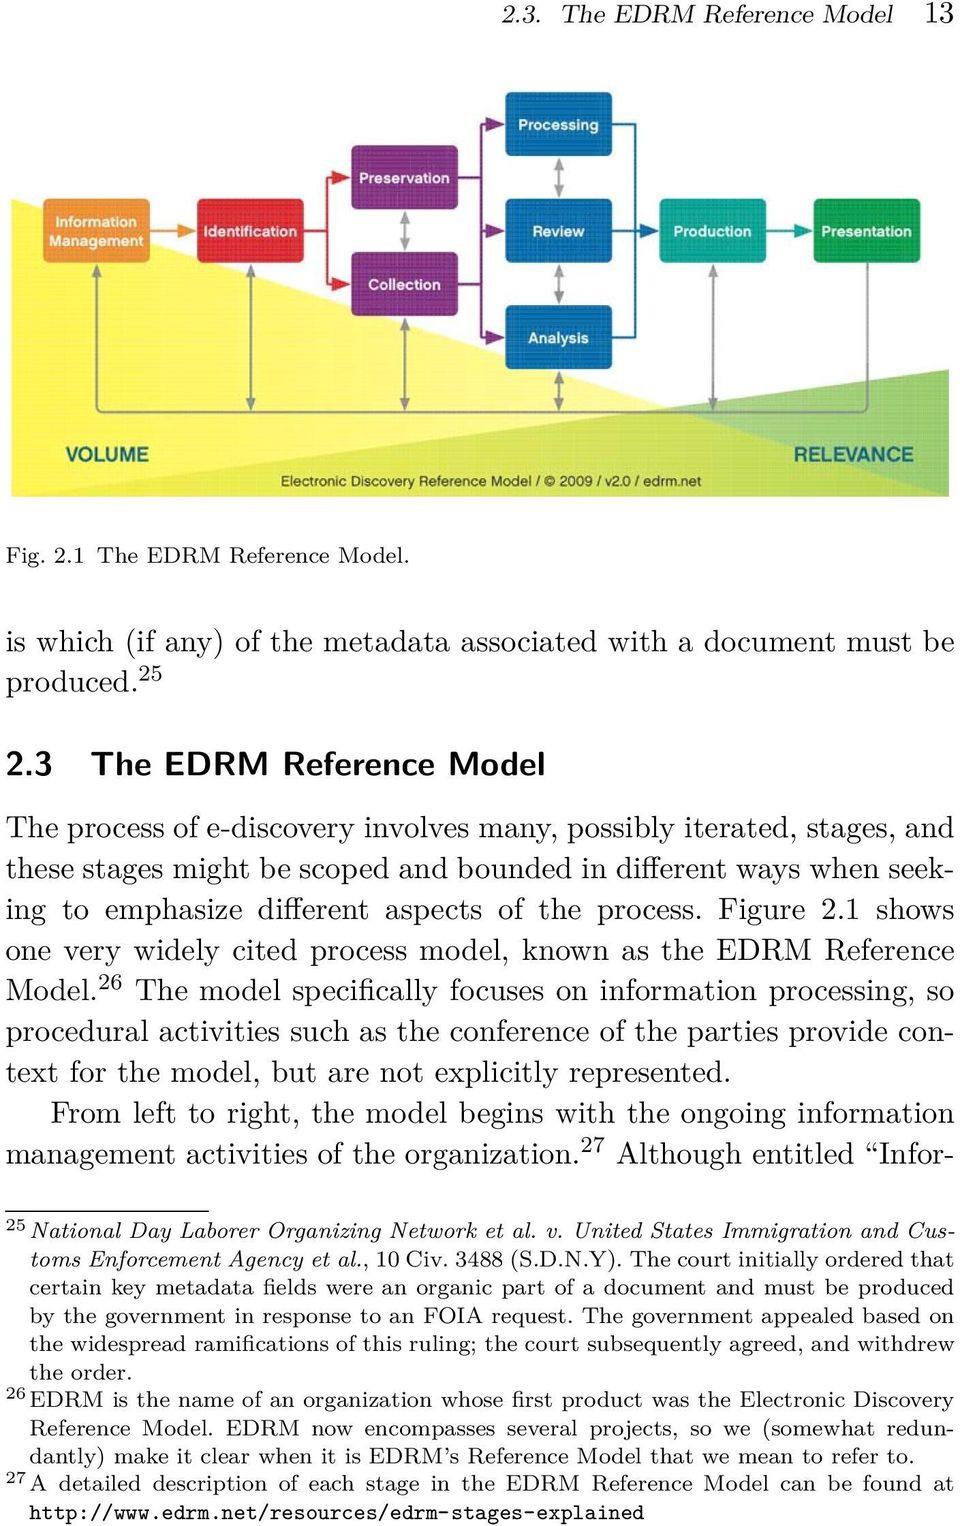 aspects of the process. Figure 2.1 shows one very widely cited process model, known as the EDRM Reference Model.